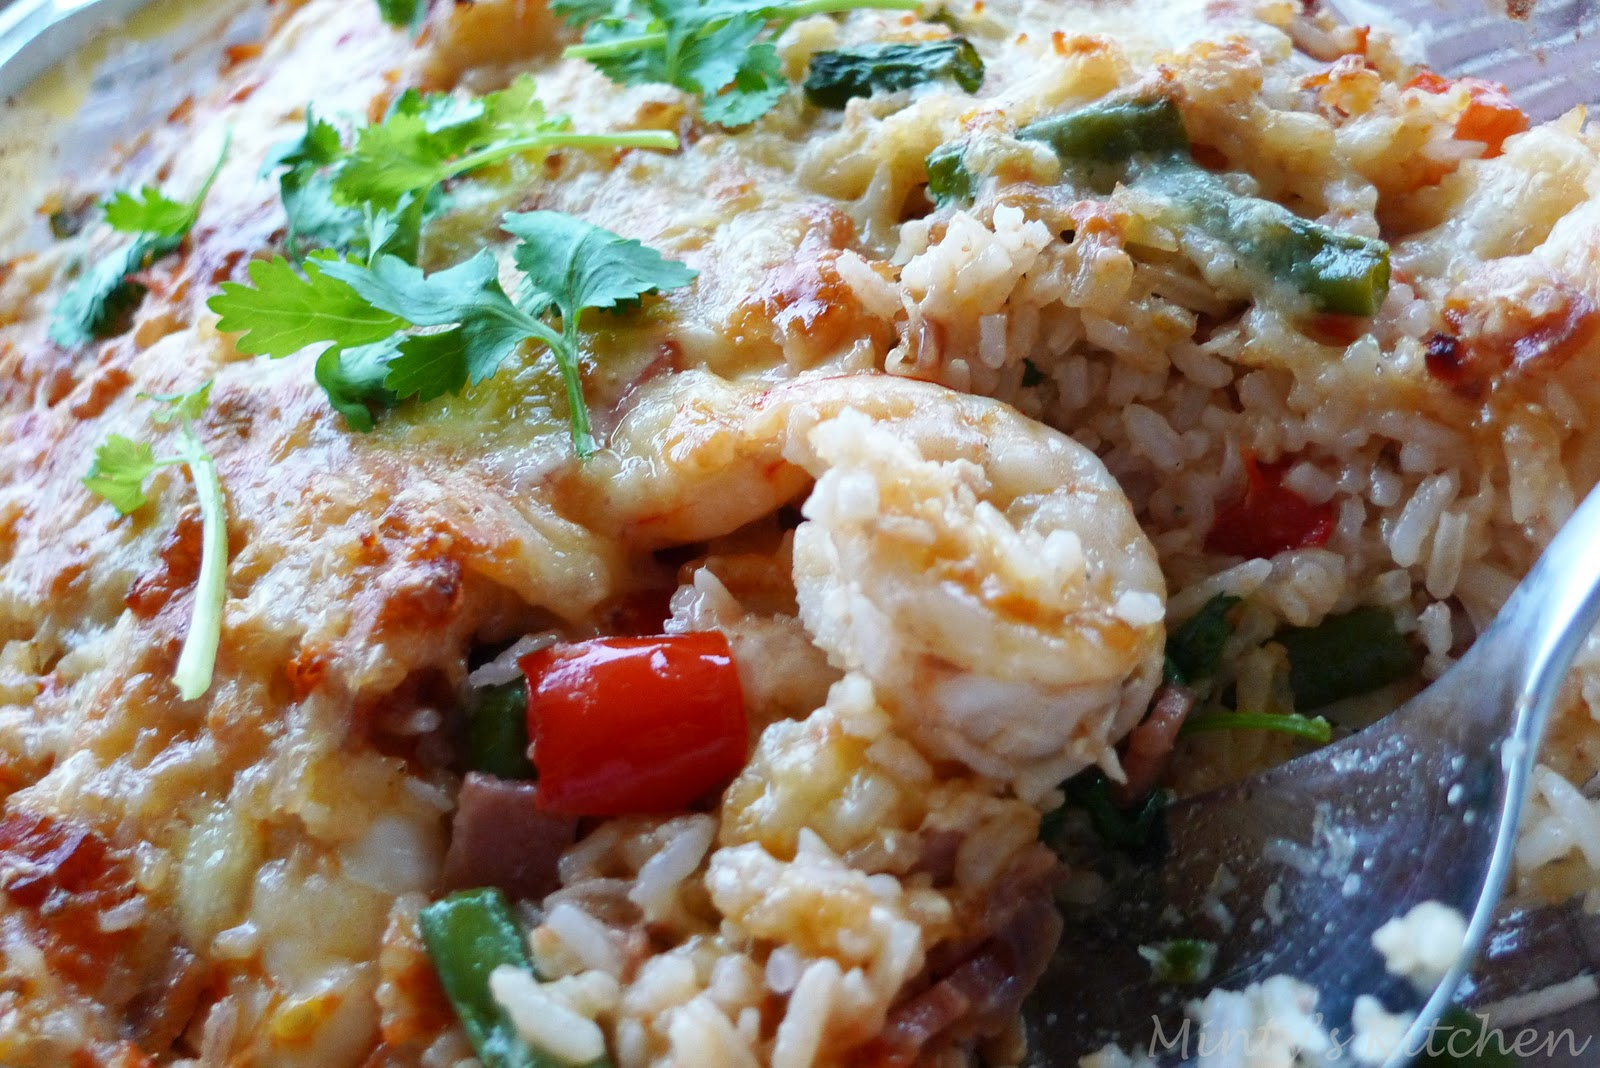 Minty's Kitchen: Cheesy Baked Rice With Prawns & Bacon